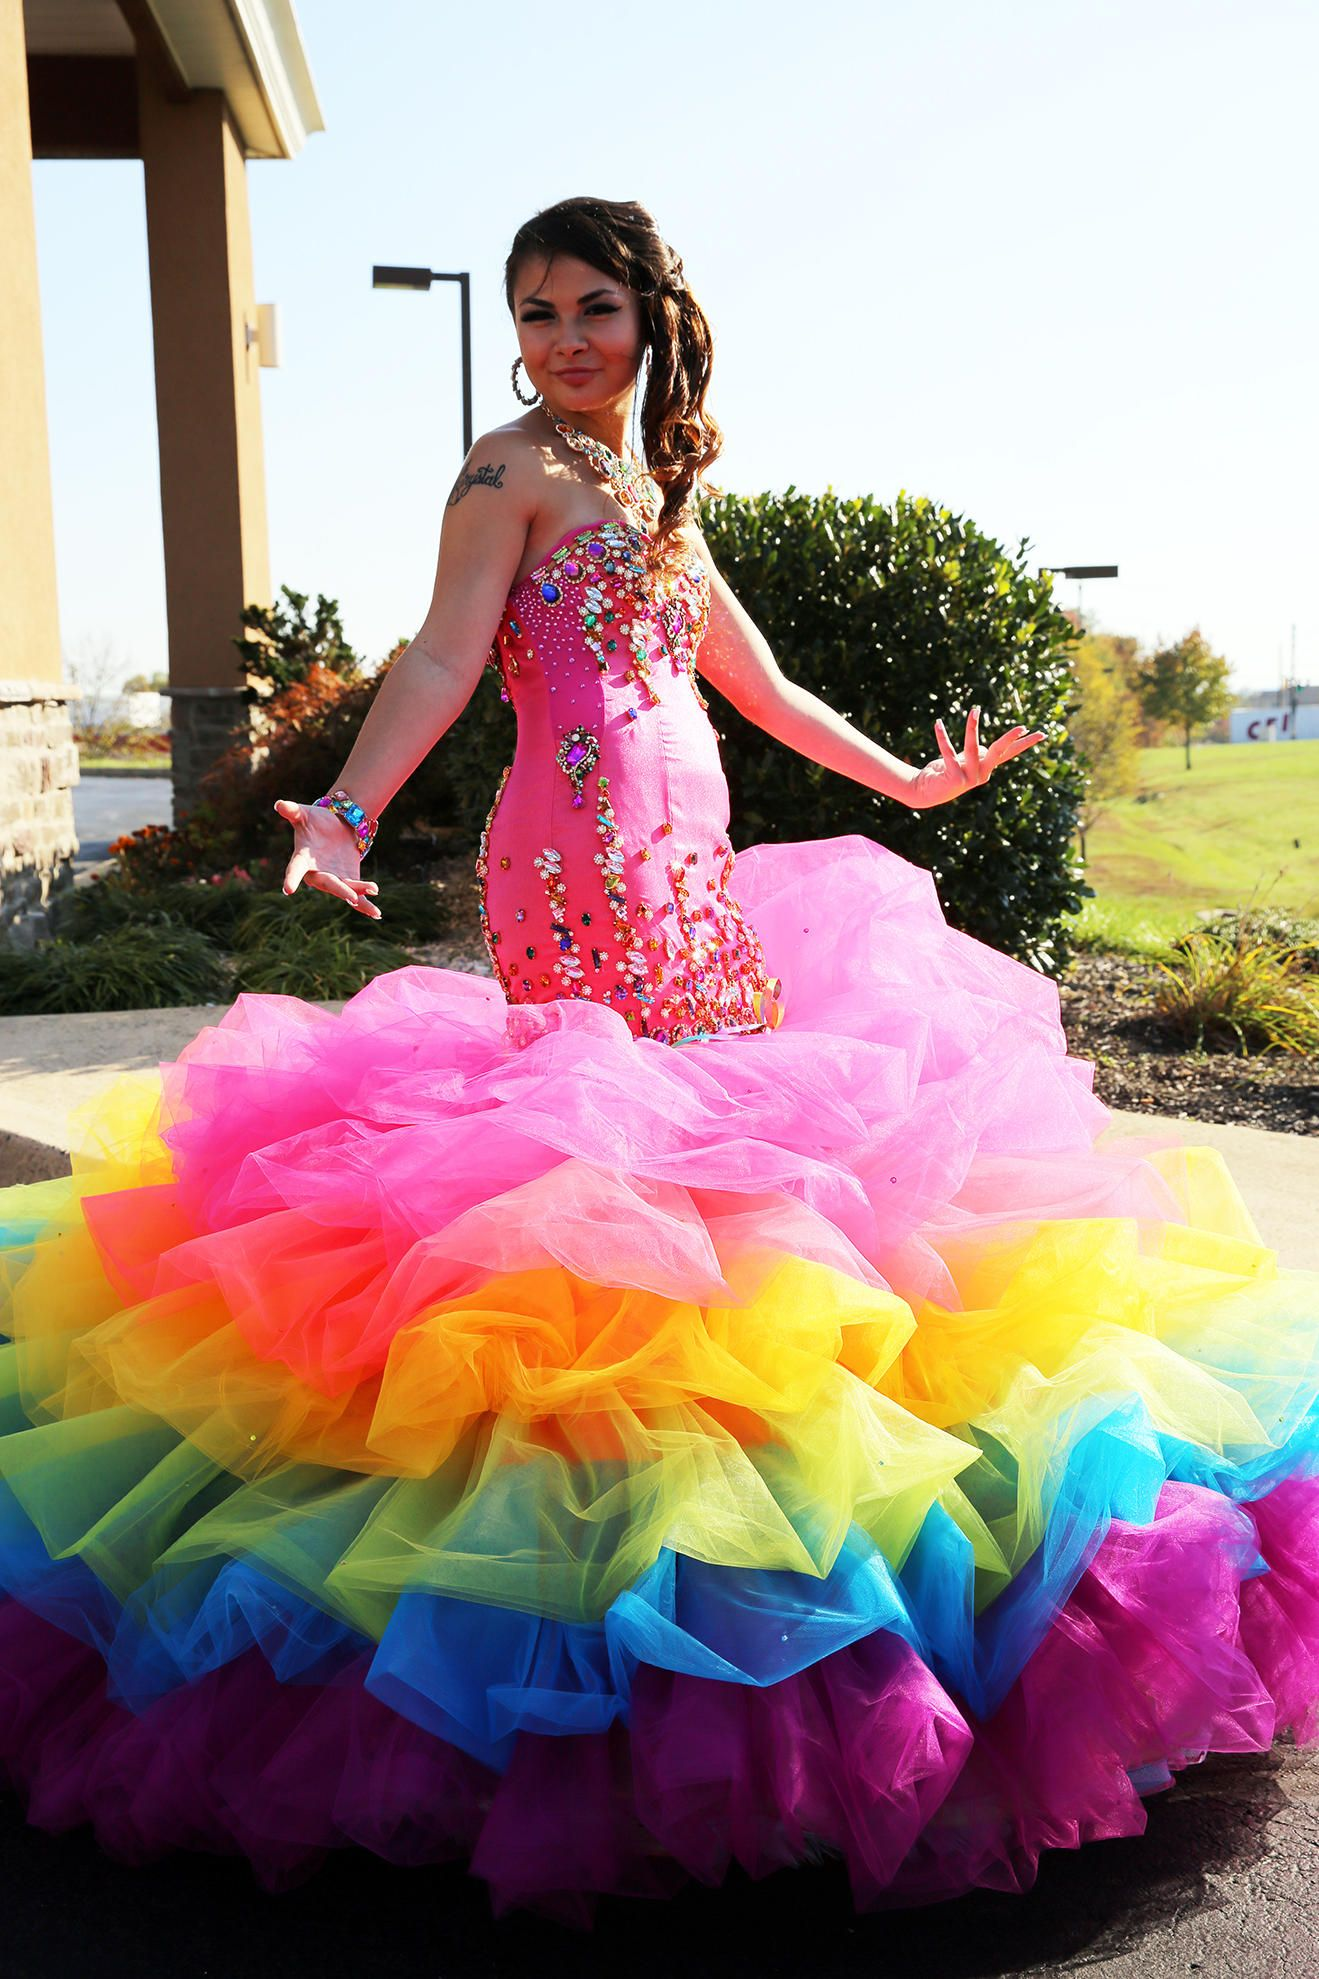 Greek Wedding And Rainbow Sweet 16 Dress Pictures